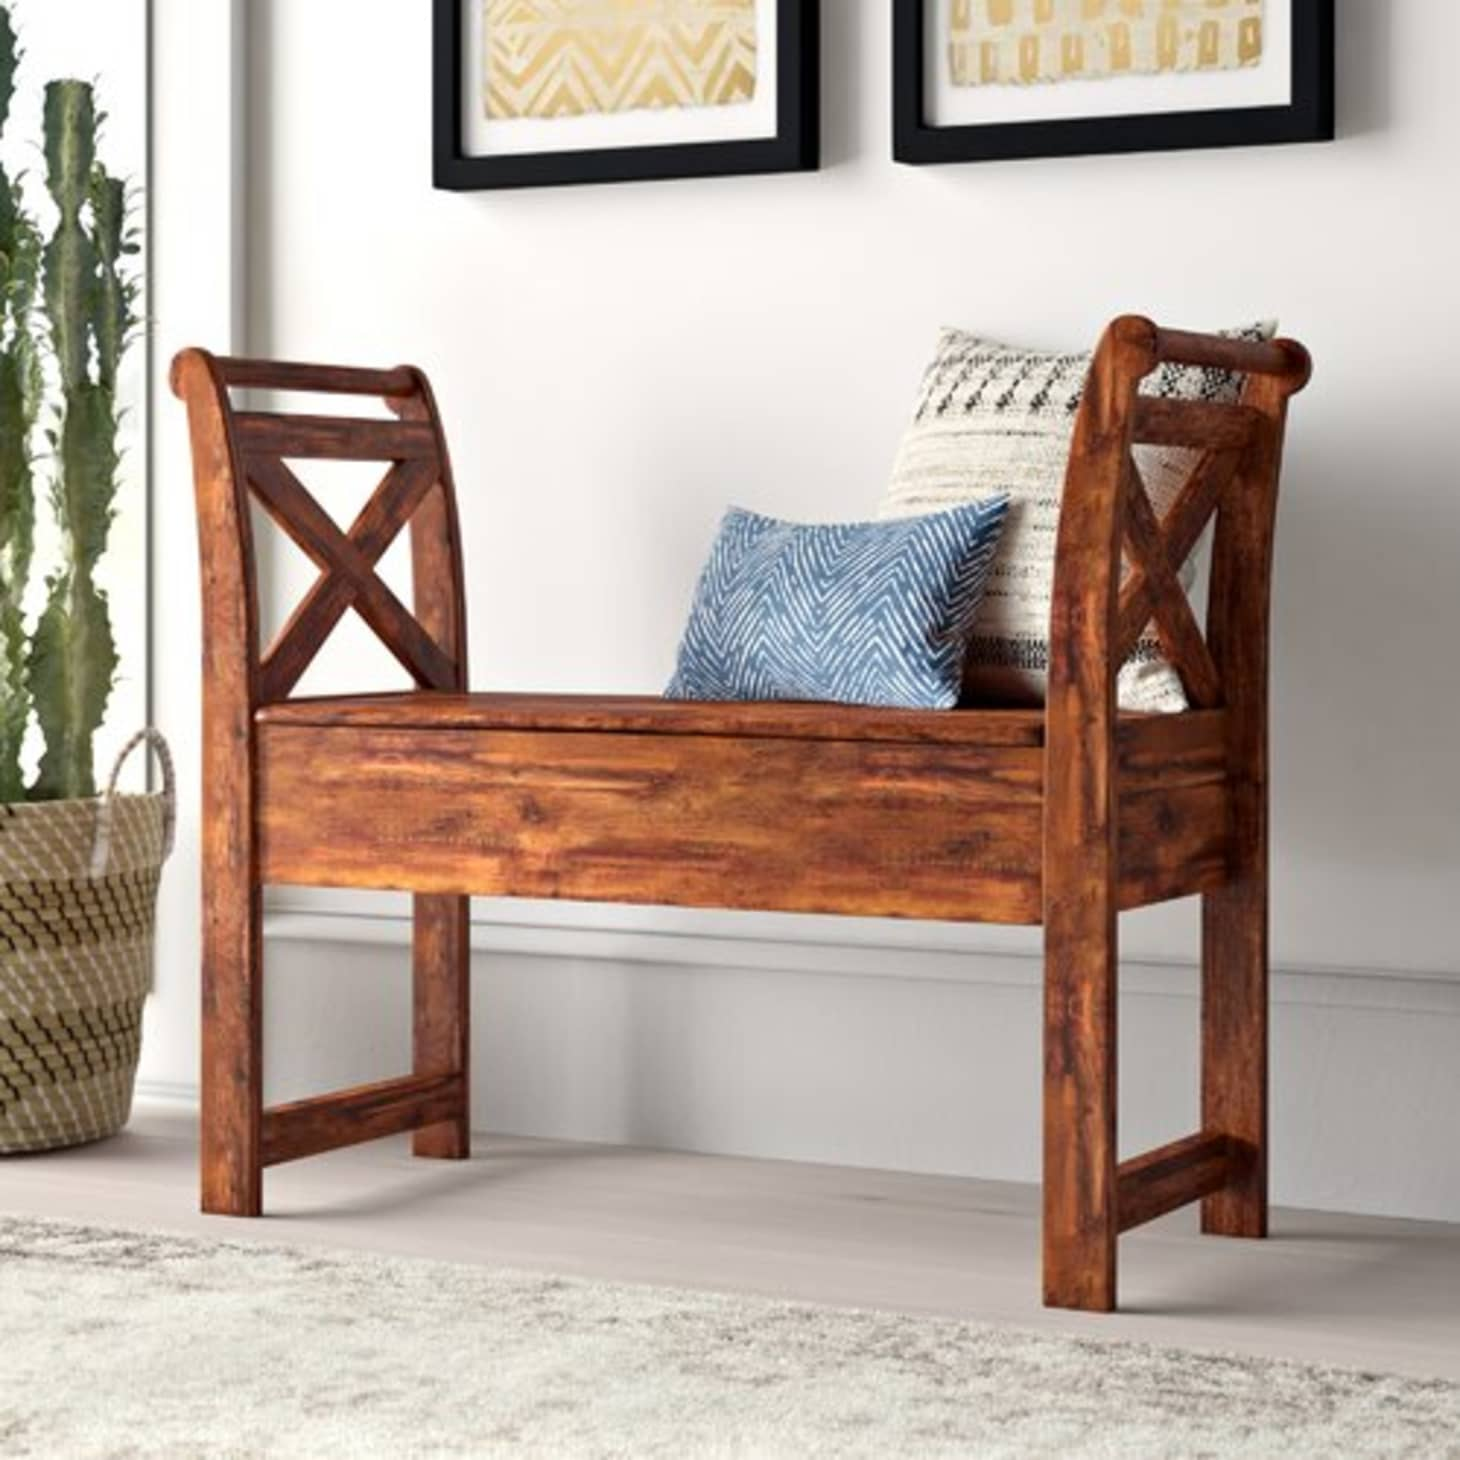 Admirable Best Storage Benches Under 200 Wayfair Walmart Ibusinesslaw Wood Chair Design Ideas Ibusinesslaworg